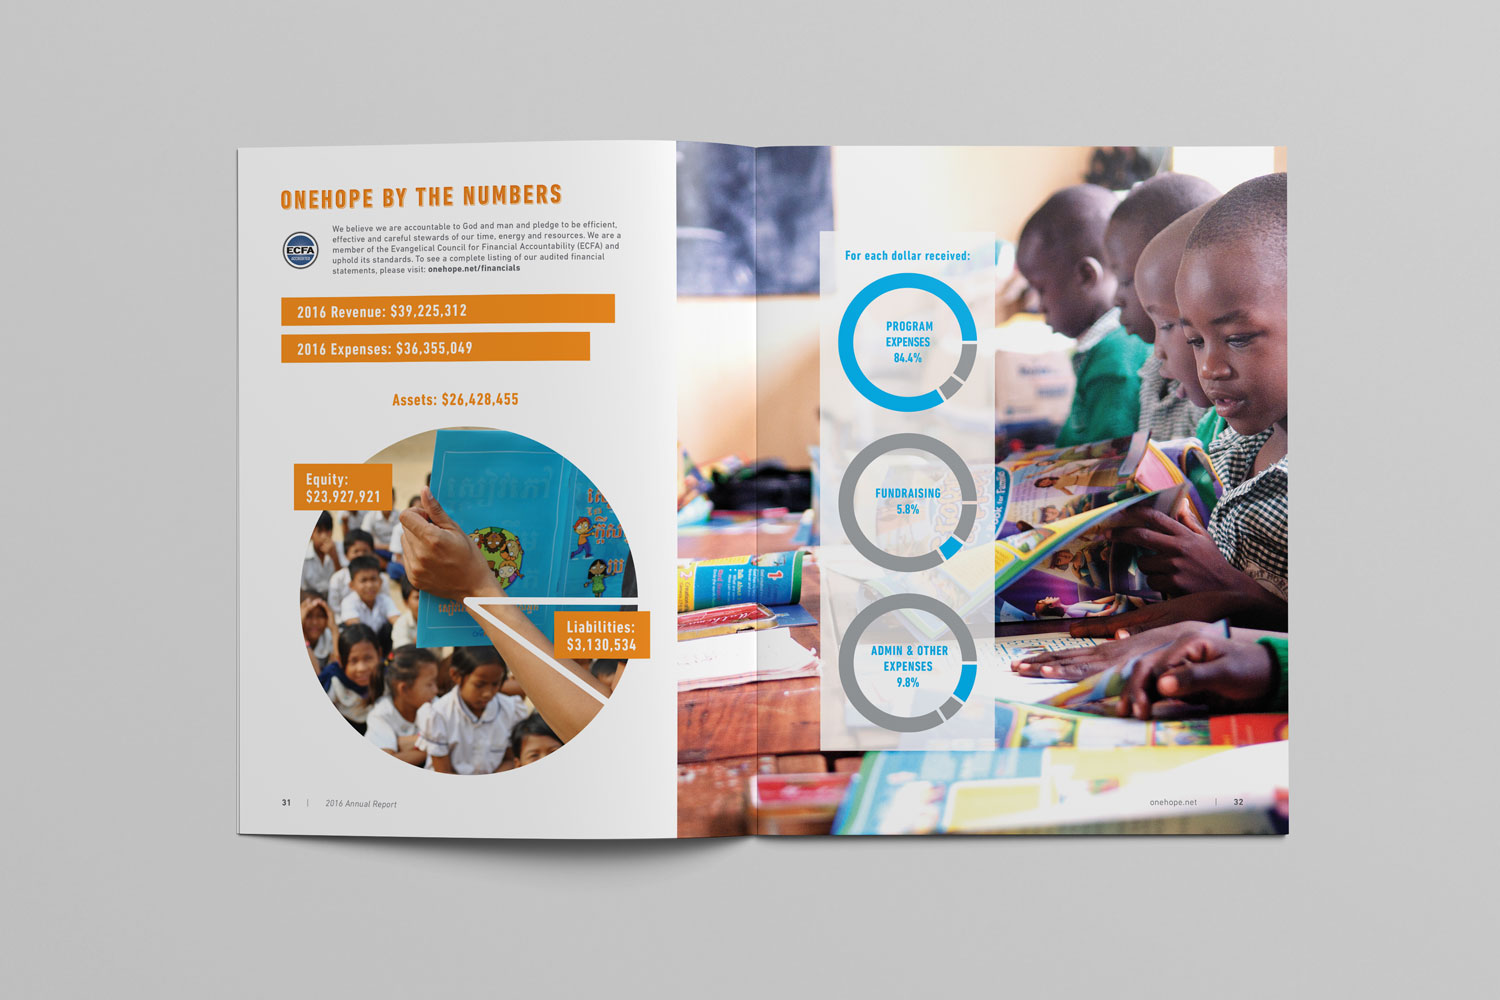 OneHope 2016 Annual Report page 31